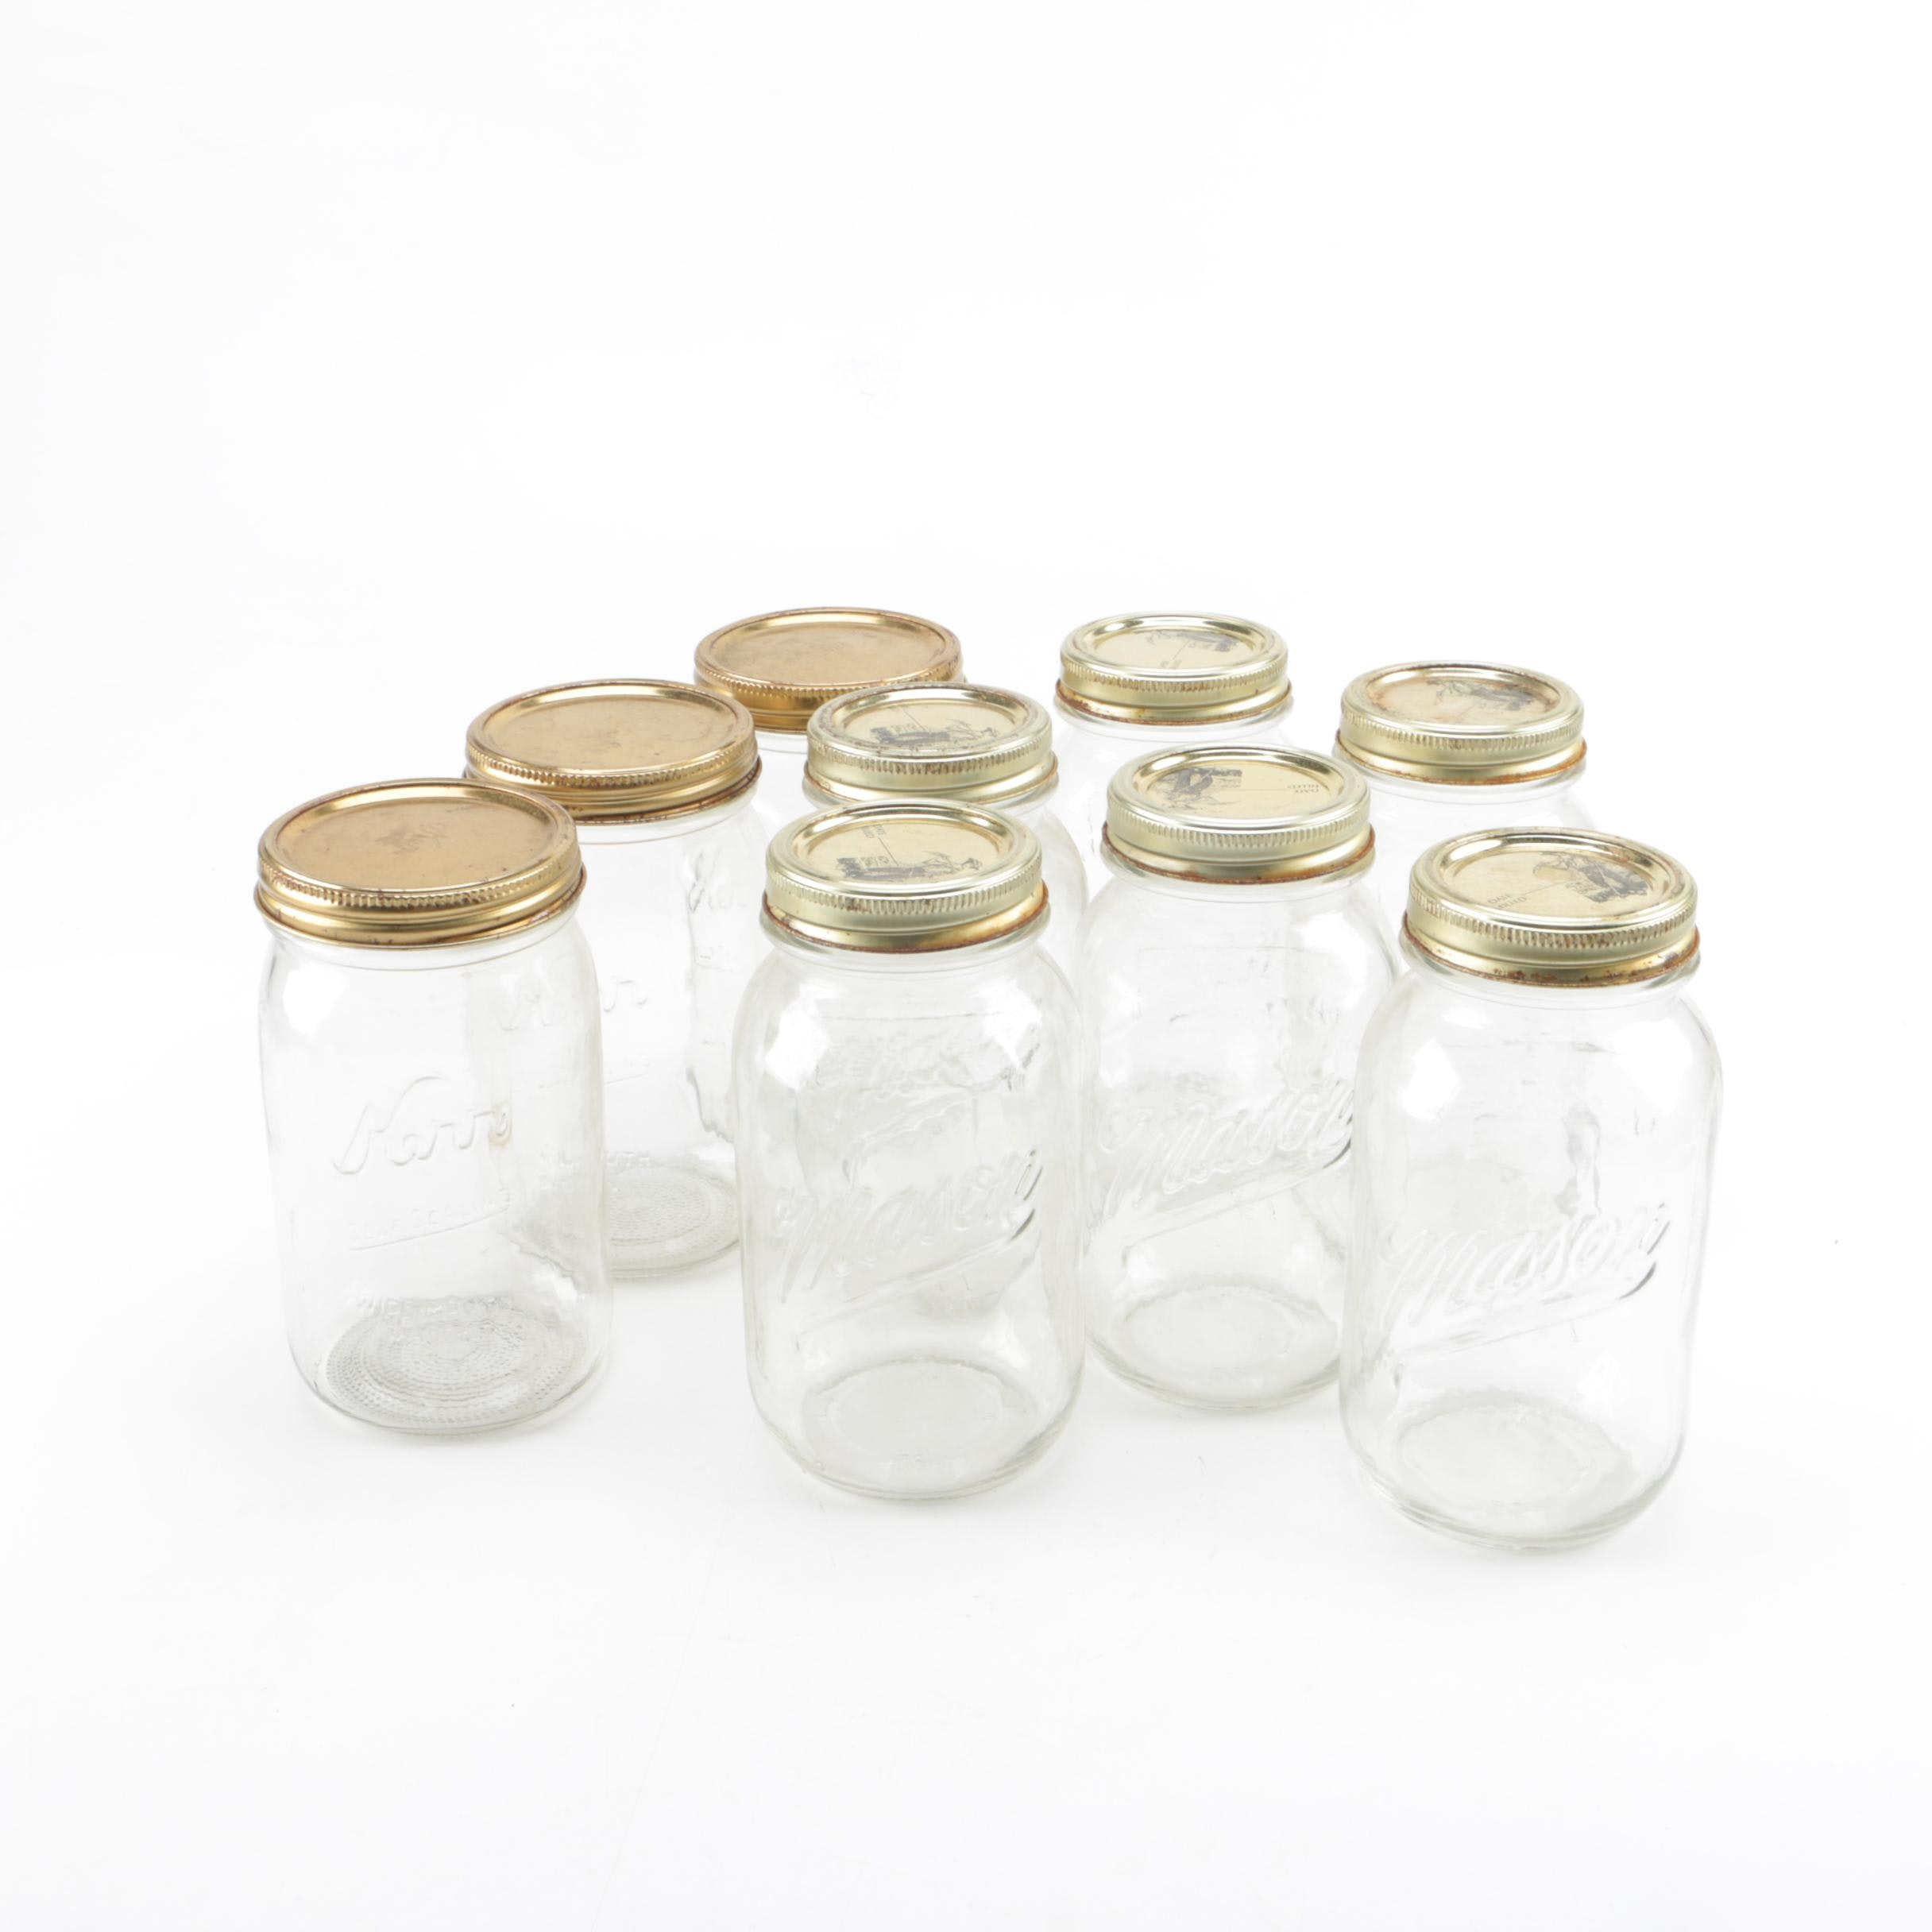 Collection of Kerr and Mason Canning Jars